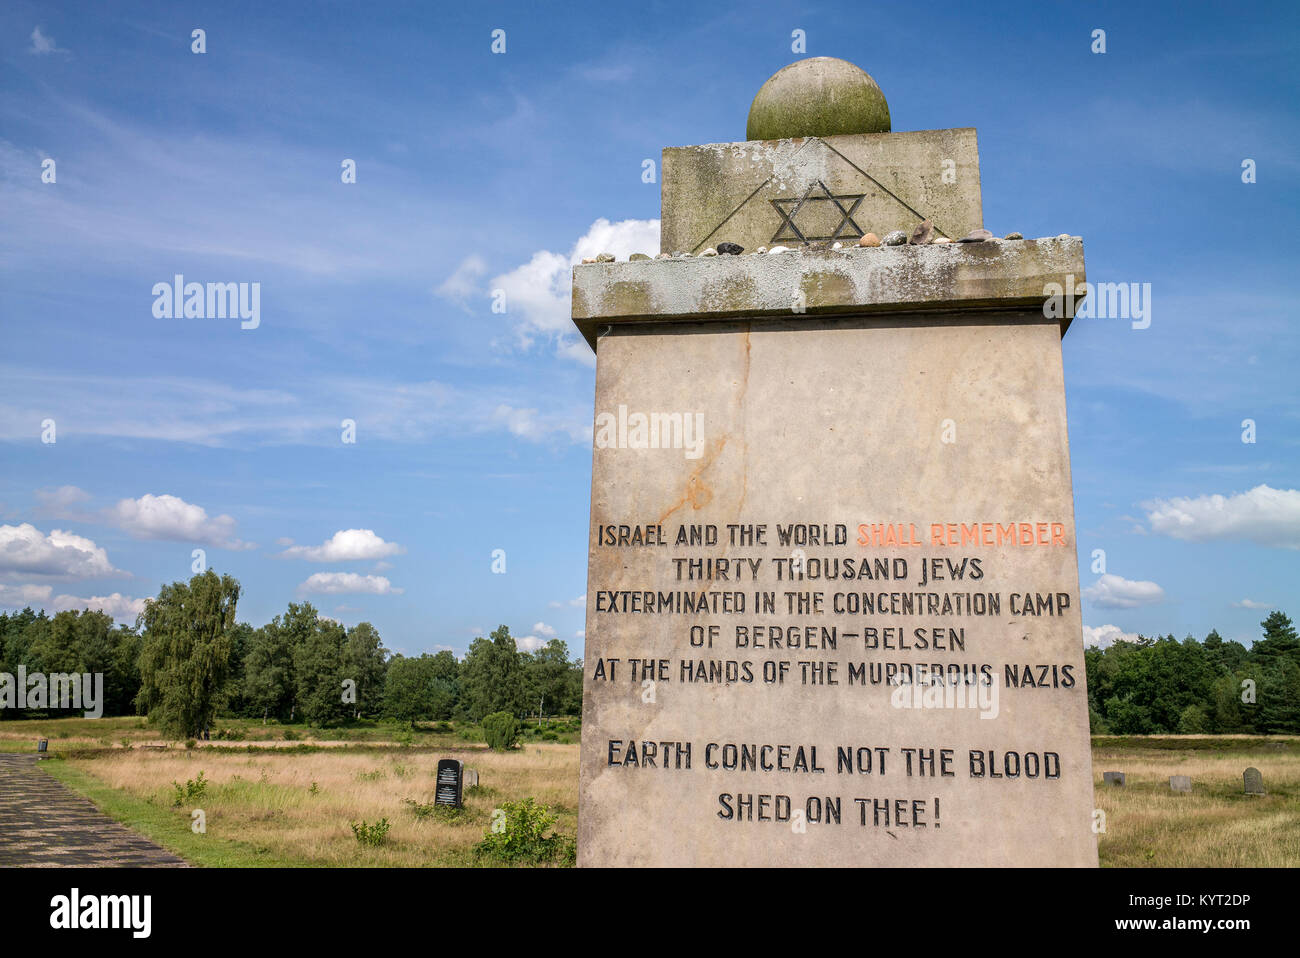 Israel and the world shall remeber thirty thousand jews exterminated in the concentration camp of Bergen-Belsen Stock Photo